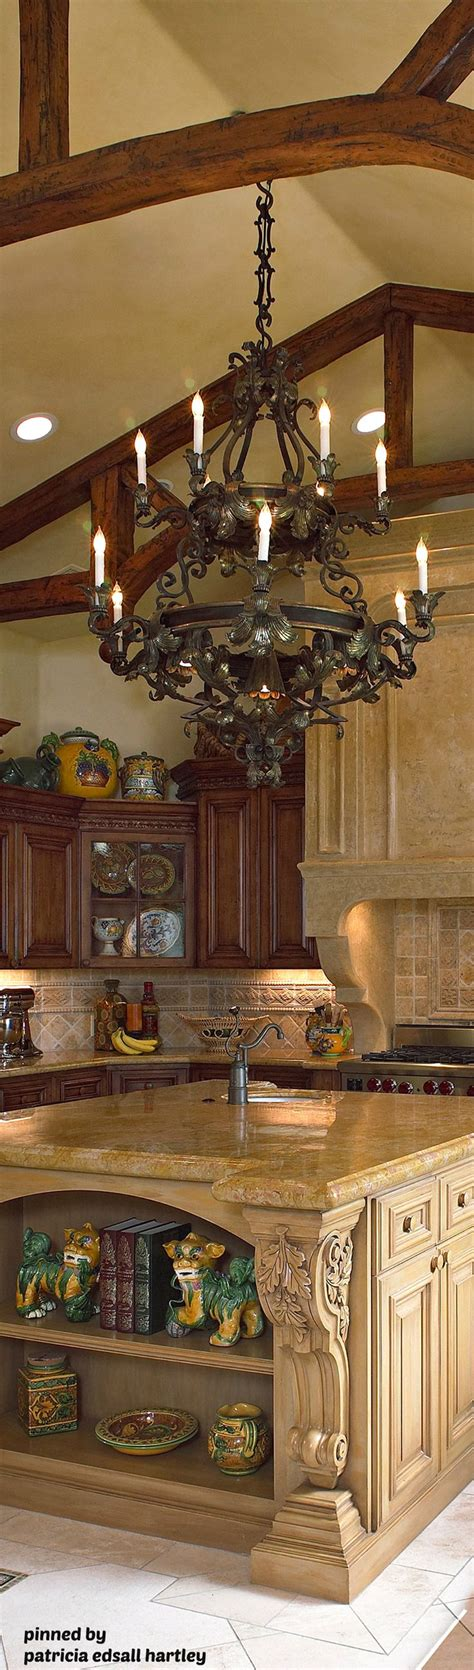 Tuscan Kitchen Lighting The 25 Best Mediterranean Kitchen Ideas On Pinterest Mediterranean Kitchen Inspiration